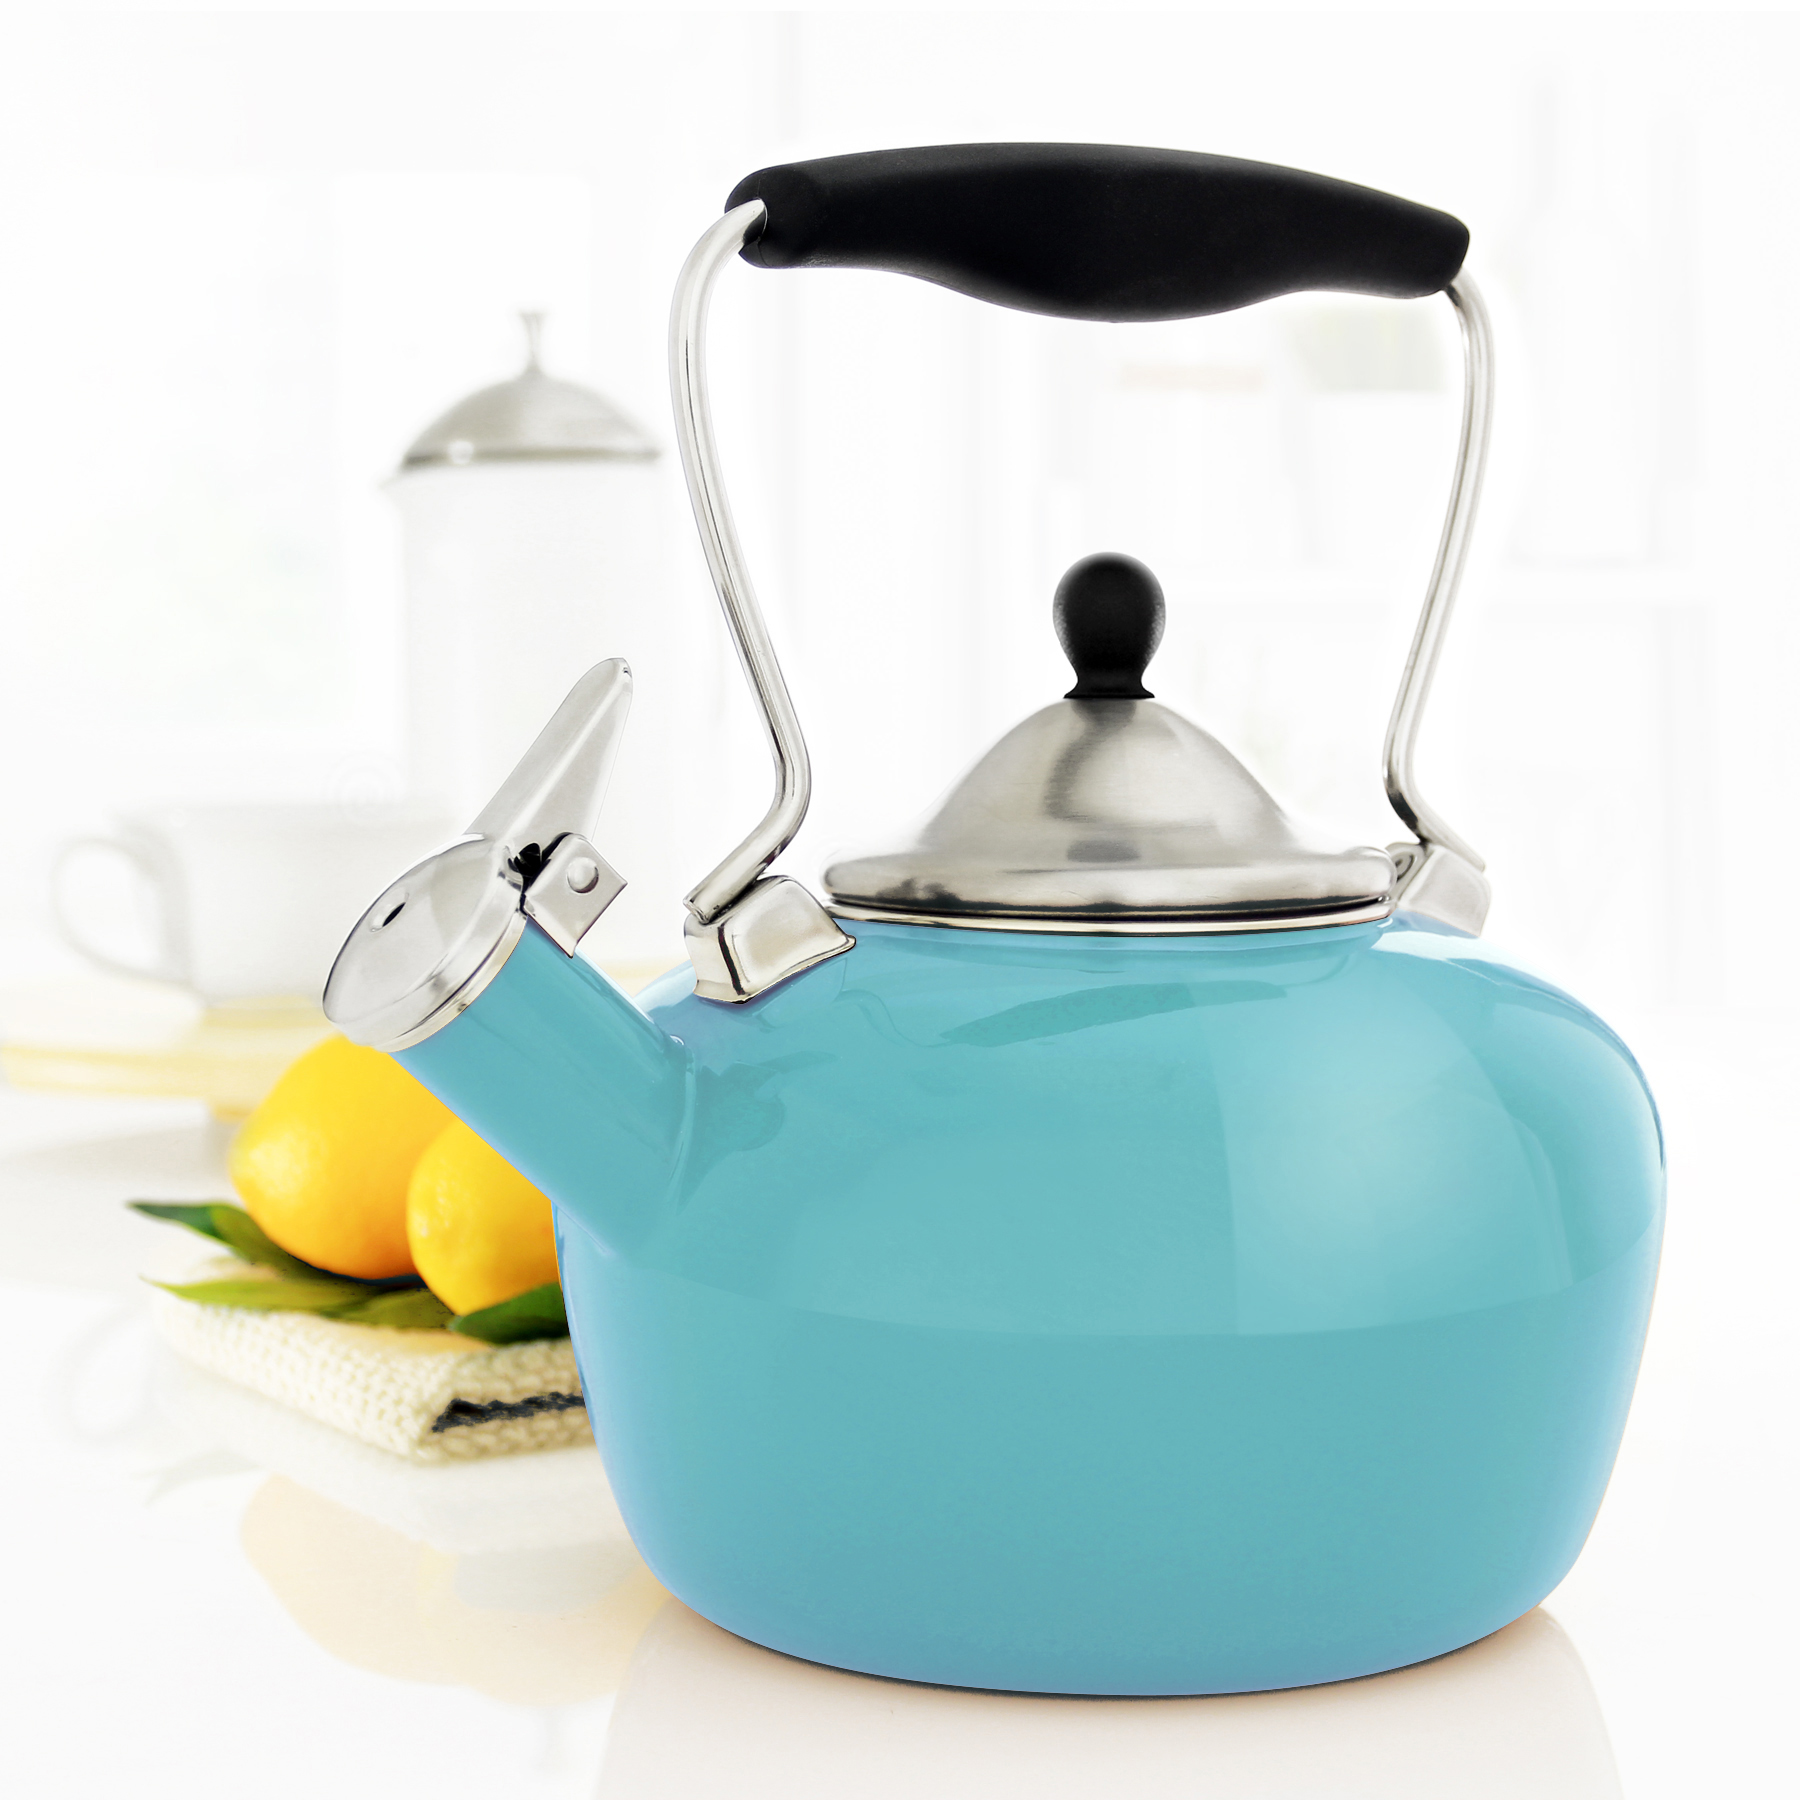 Chantal 1.8-qt Enamel-on-Steel Catherine Teakettle